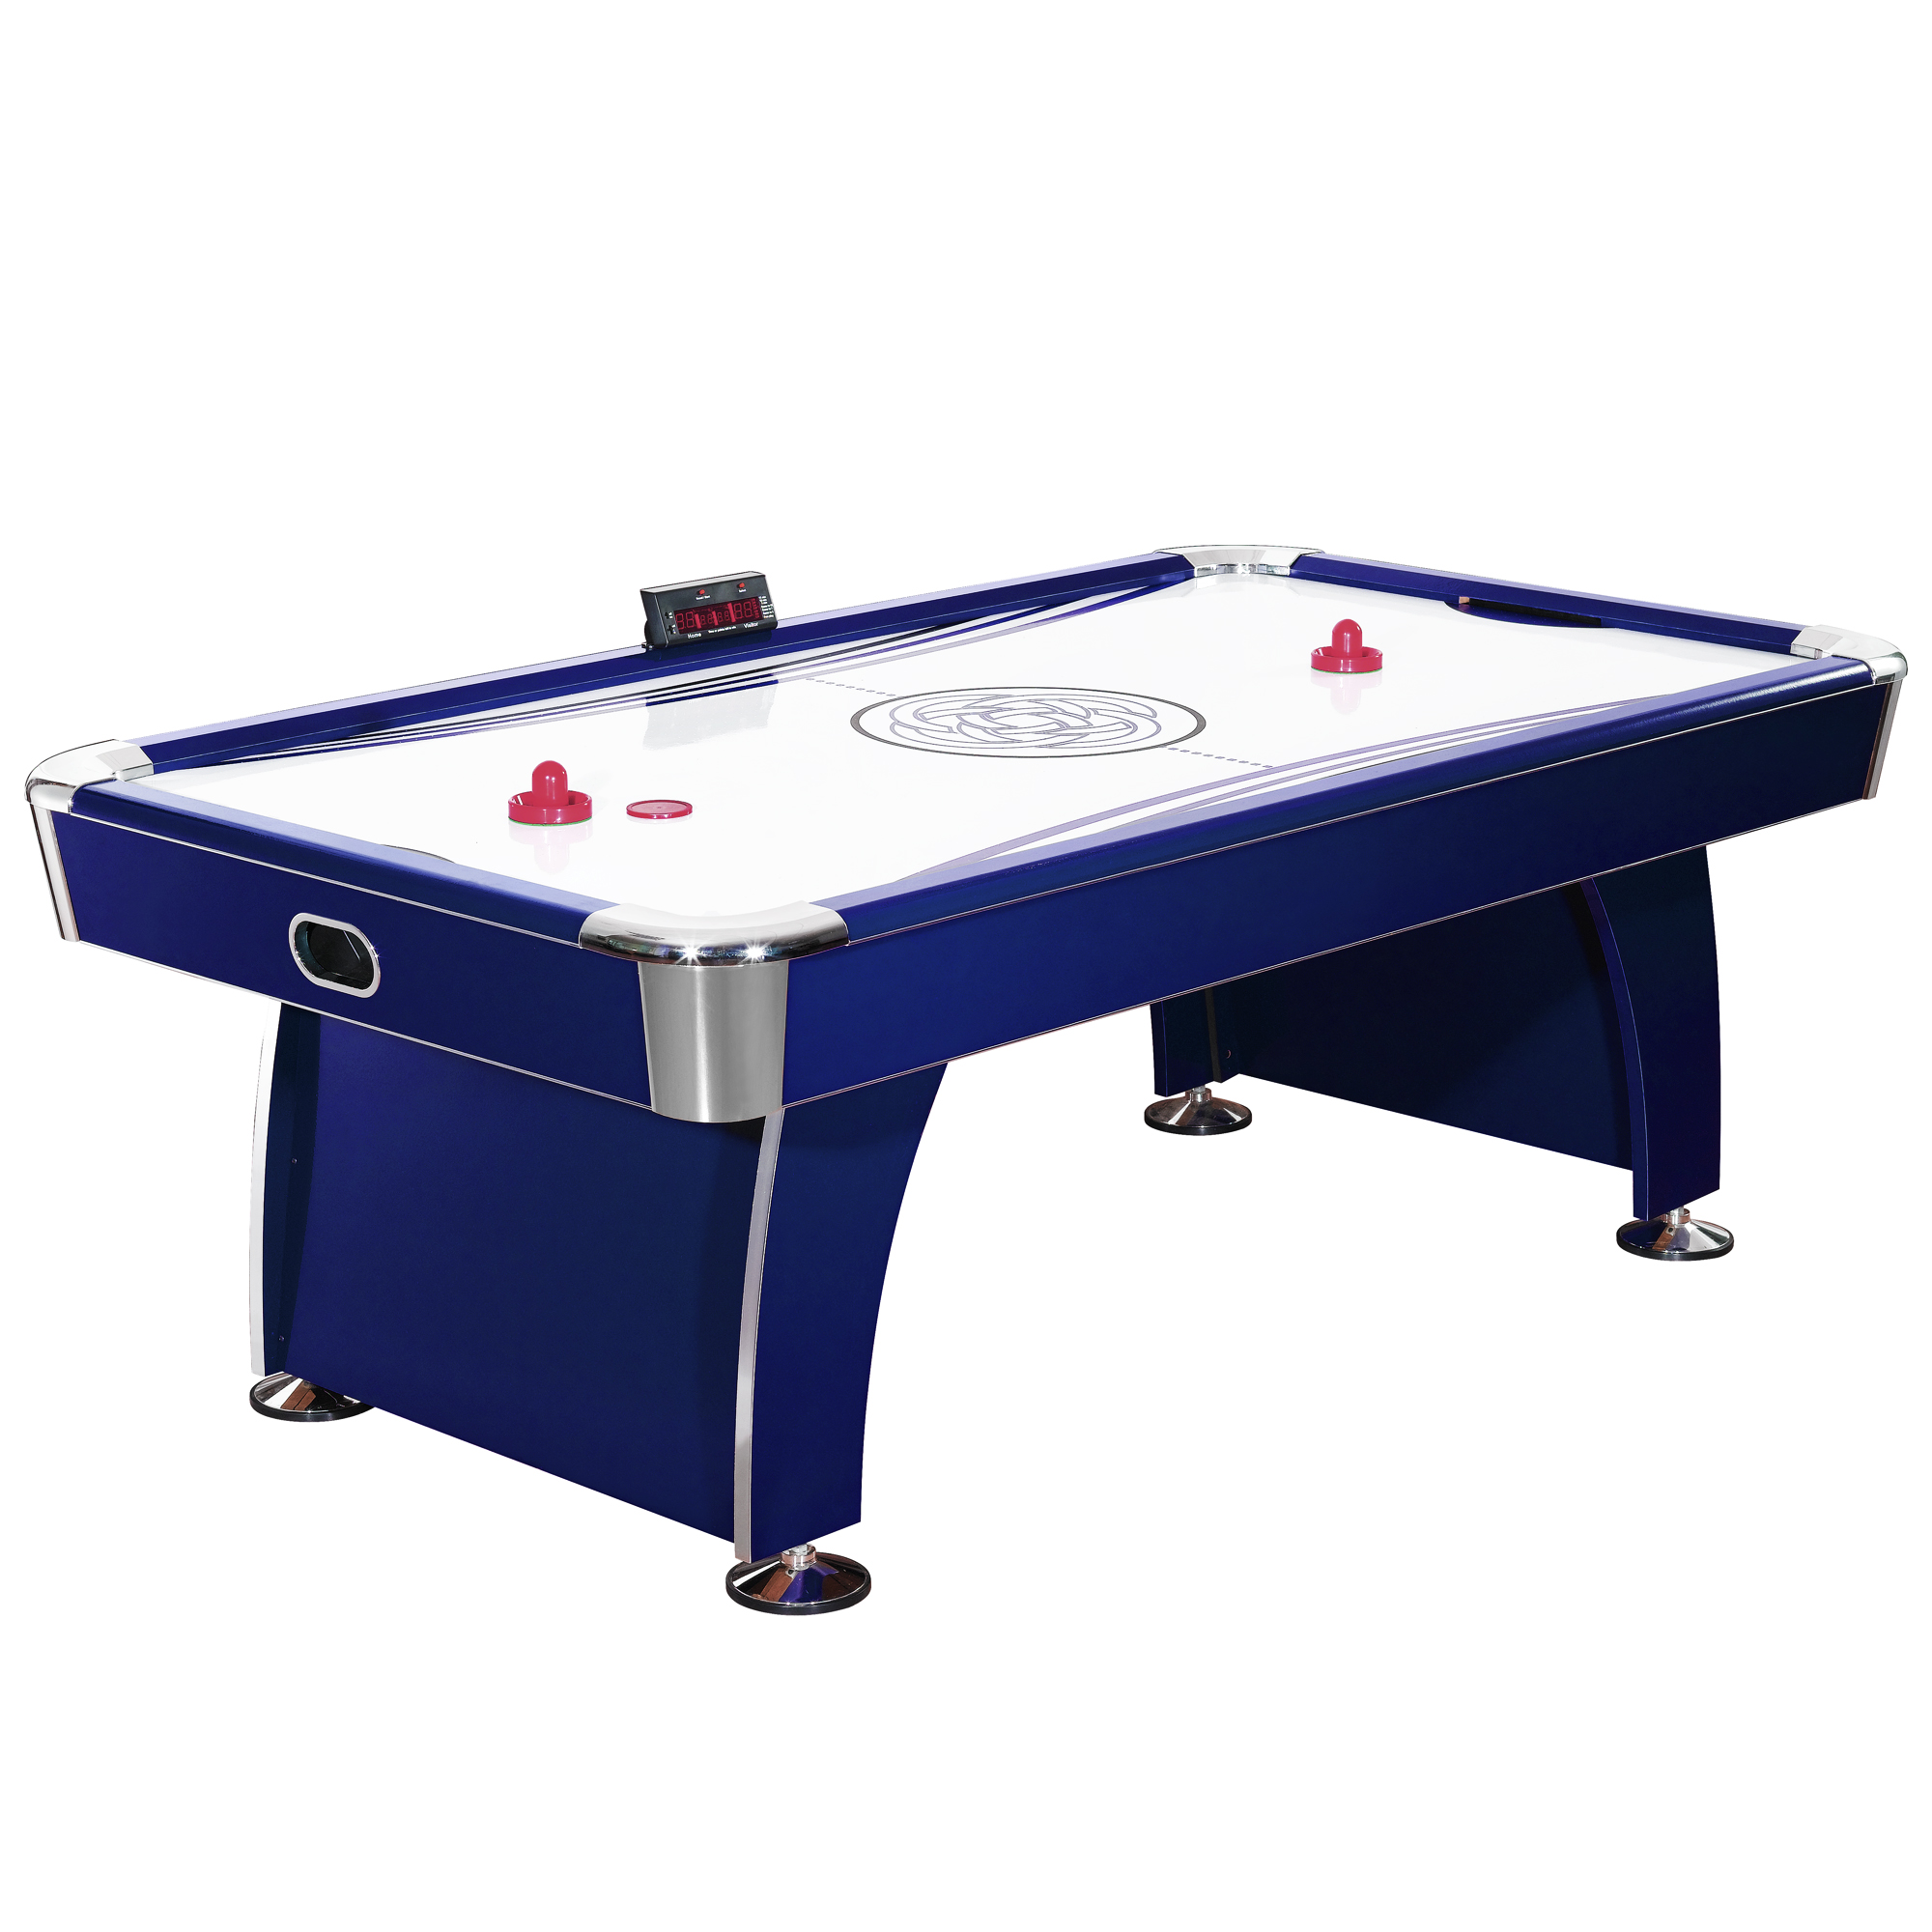 Hathaway Phantom 7.5-Foot Air Hockey Game Table for Kids and Adults, with Electronic Scoring, Dual Output Blowers,... by Blue Wave